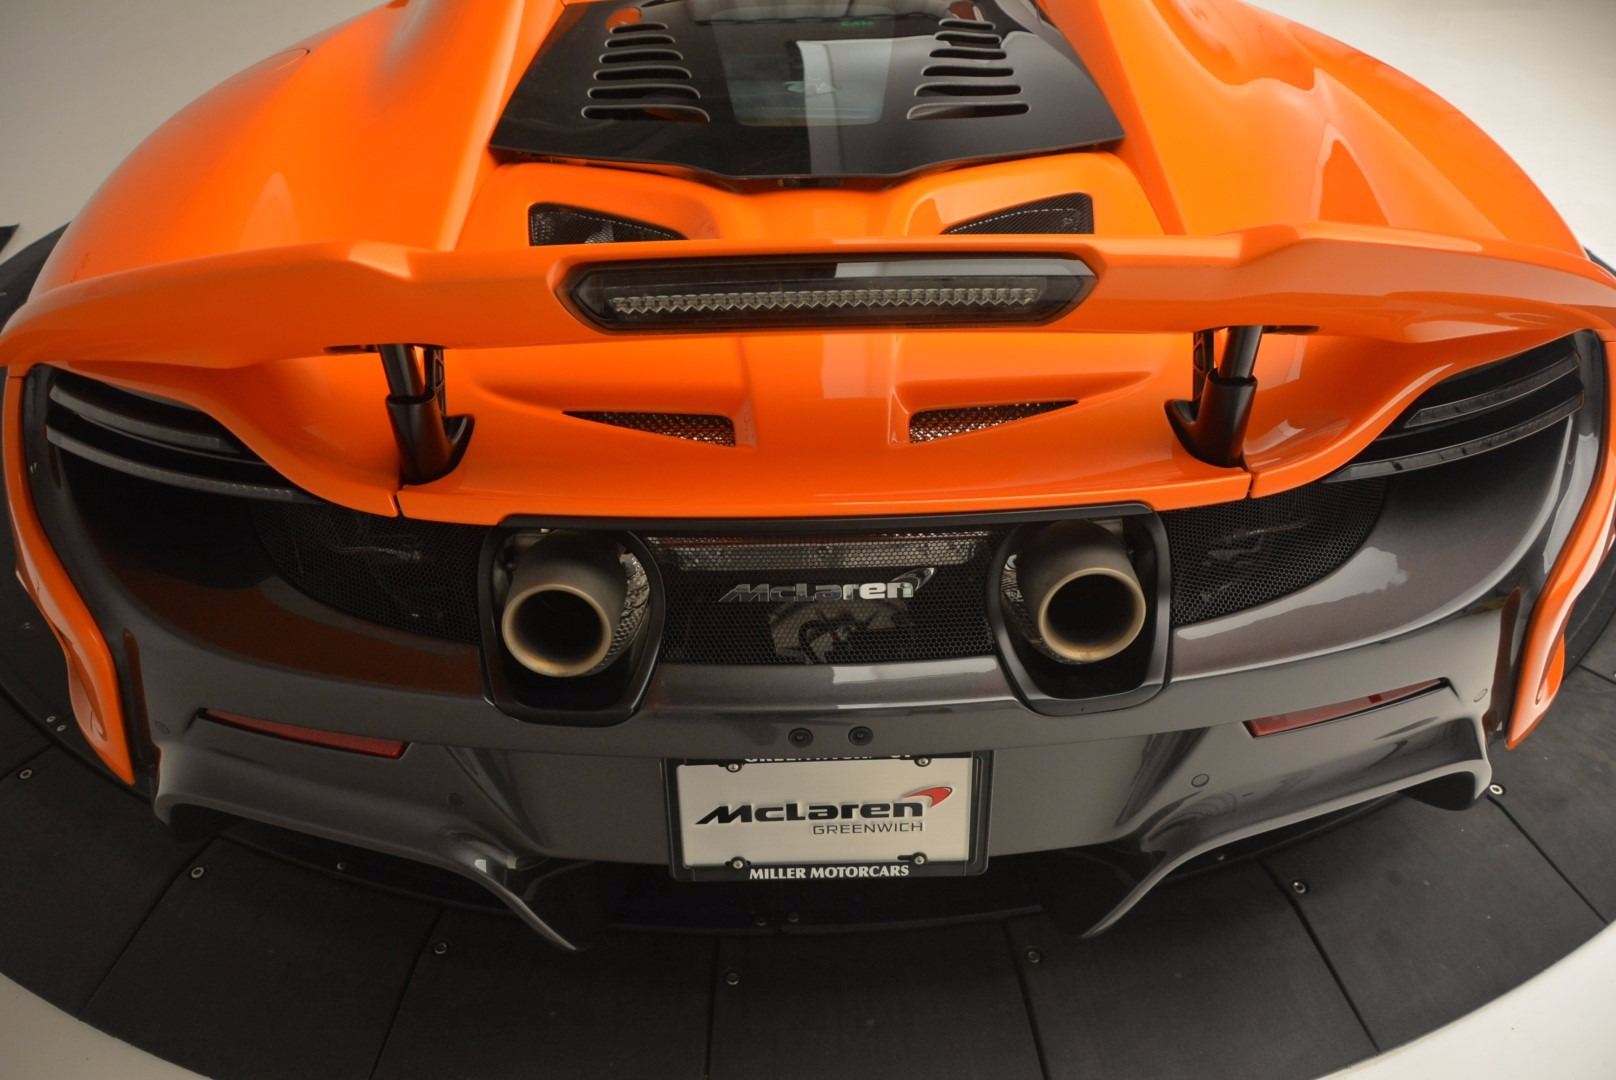 Used 2016 McLaren 675LT Spider Convertible For Sale In Greenwich, CT. Alfa Romeo of Greenwich, 3159 1150_p31